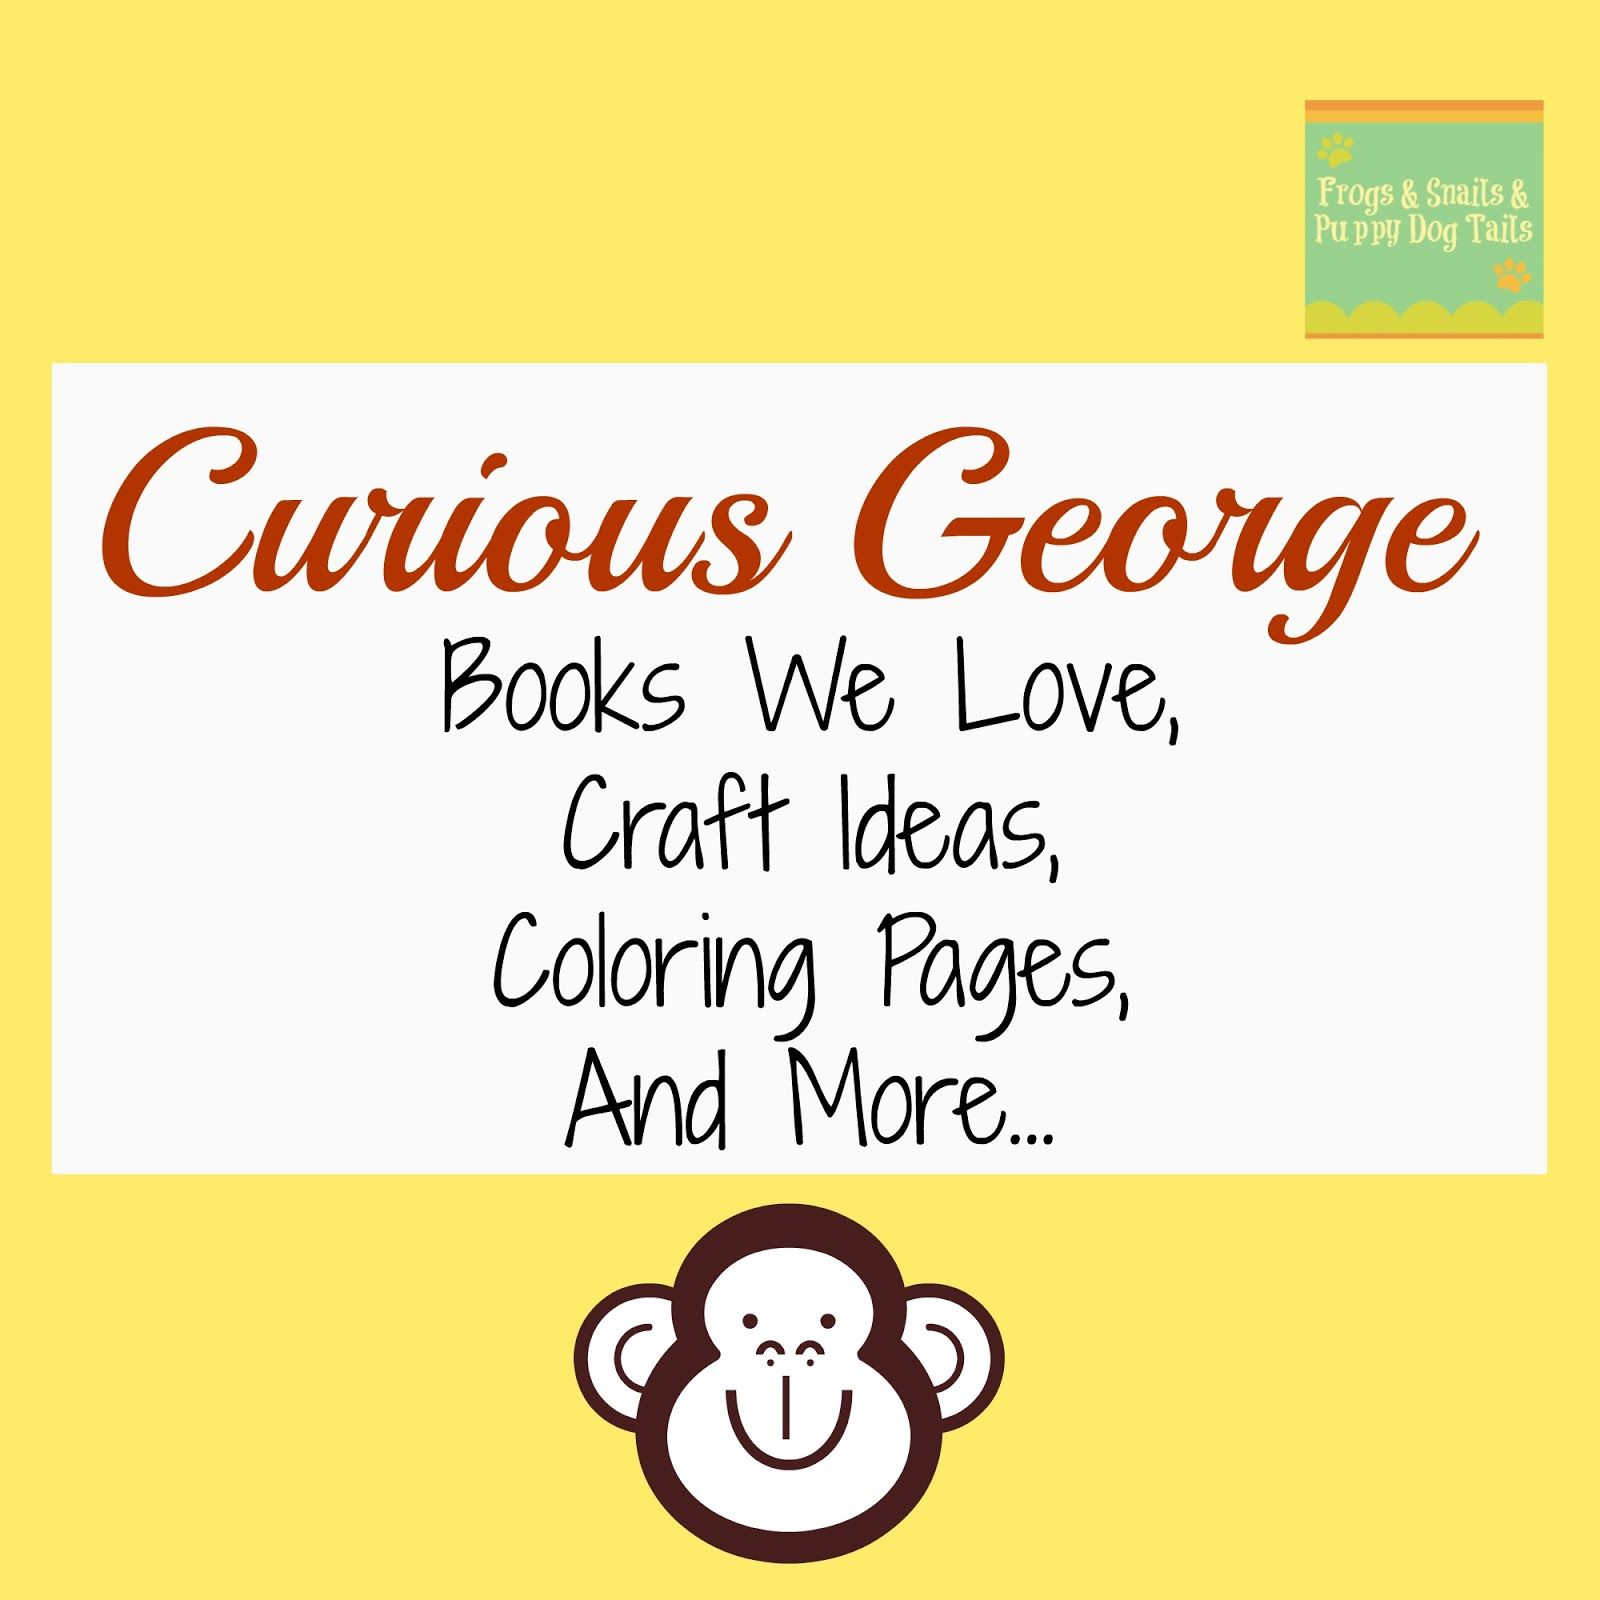 Curious George Books We Love Craft Ideas Coloring Pages And More Themes